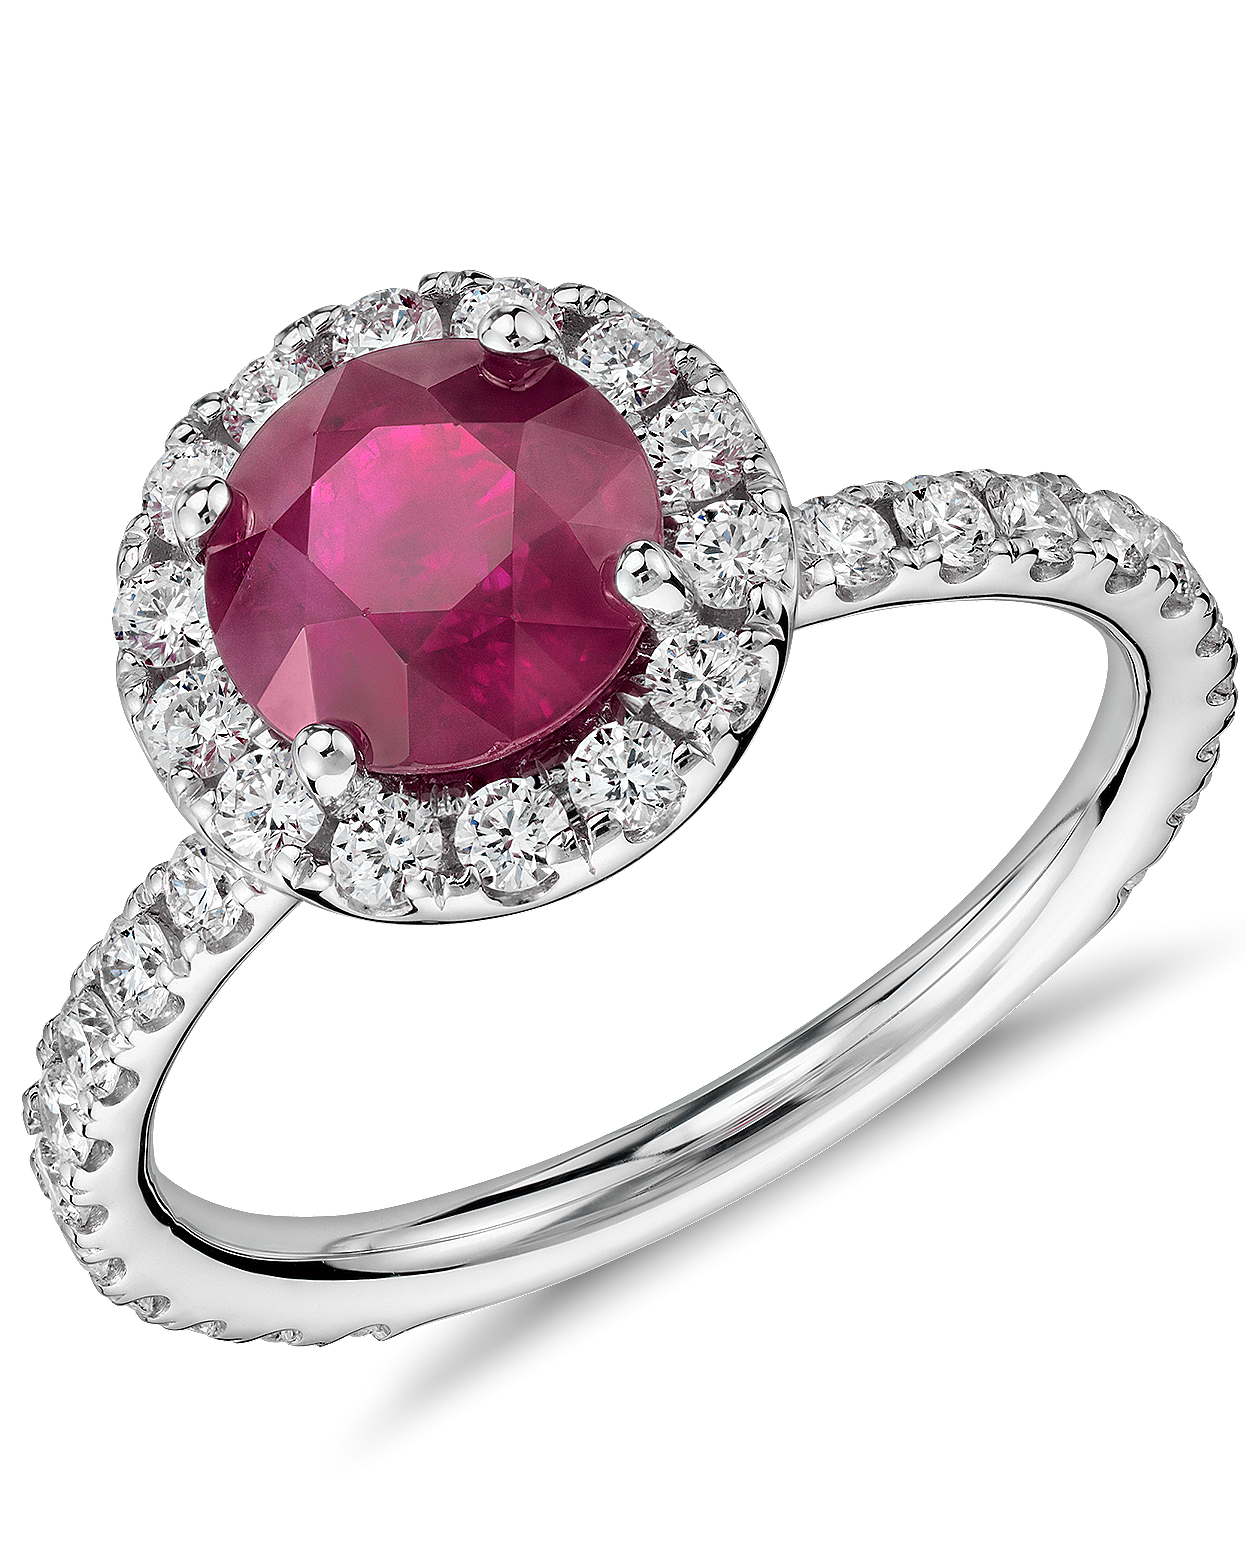 blue-nile-ruby-engagement-ring-diamond-pave-halo-0816.jpg